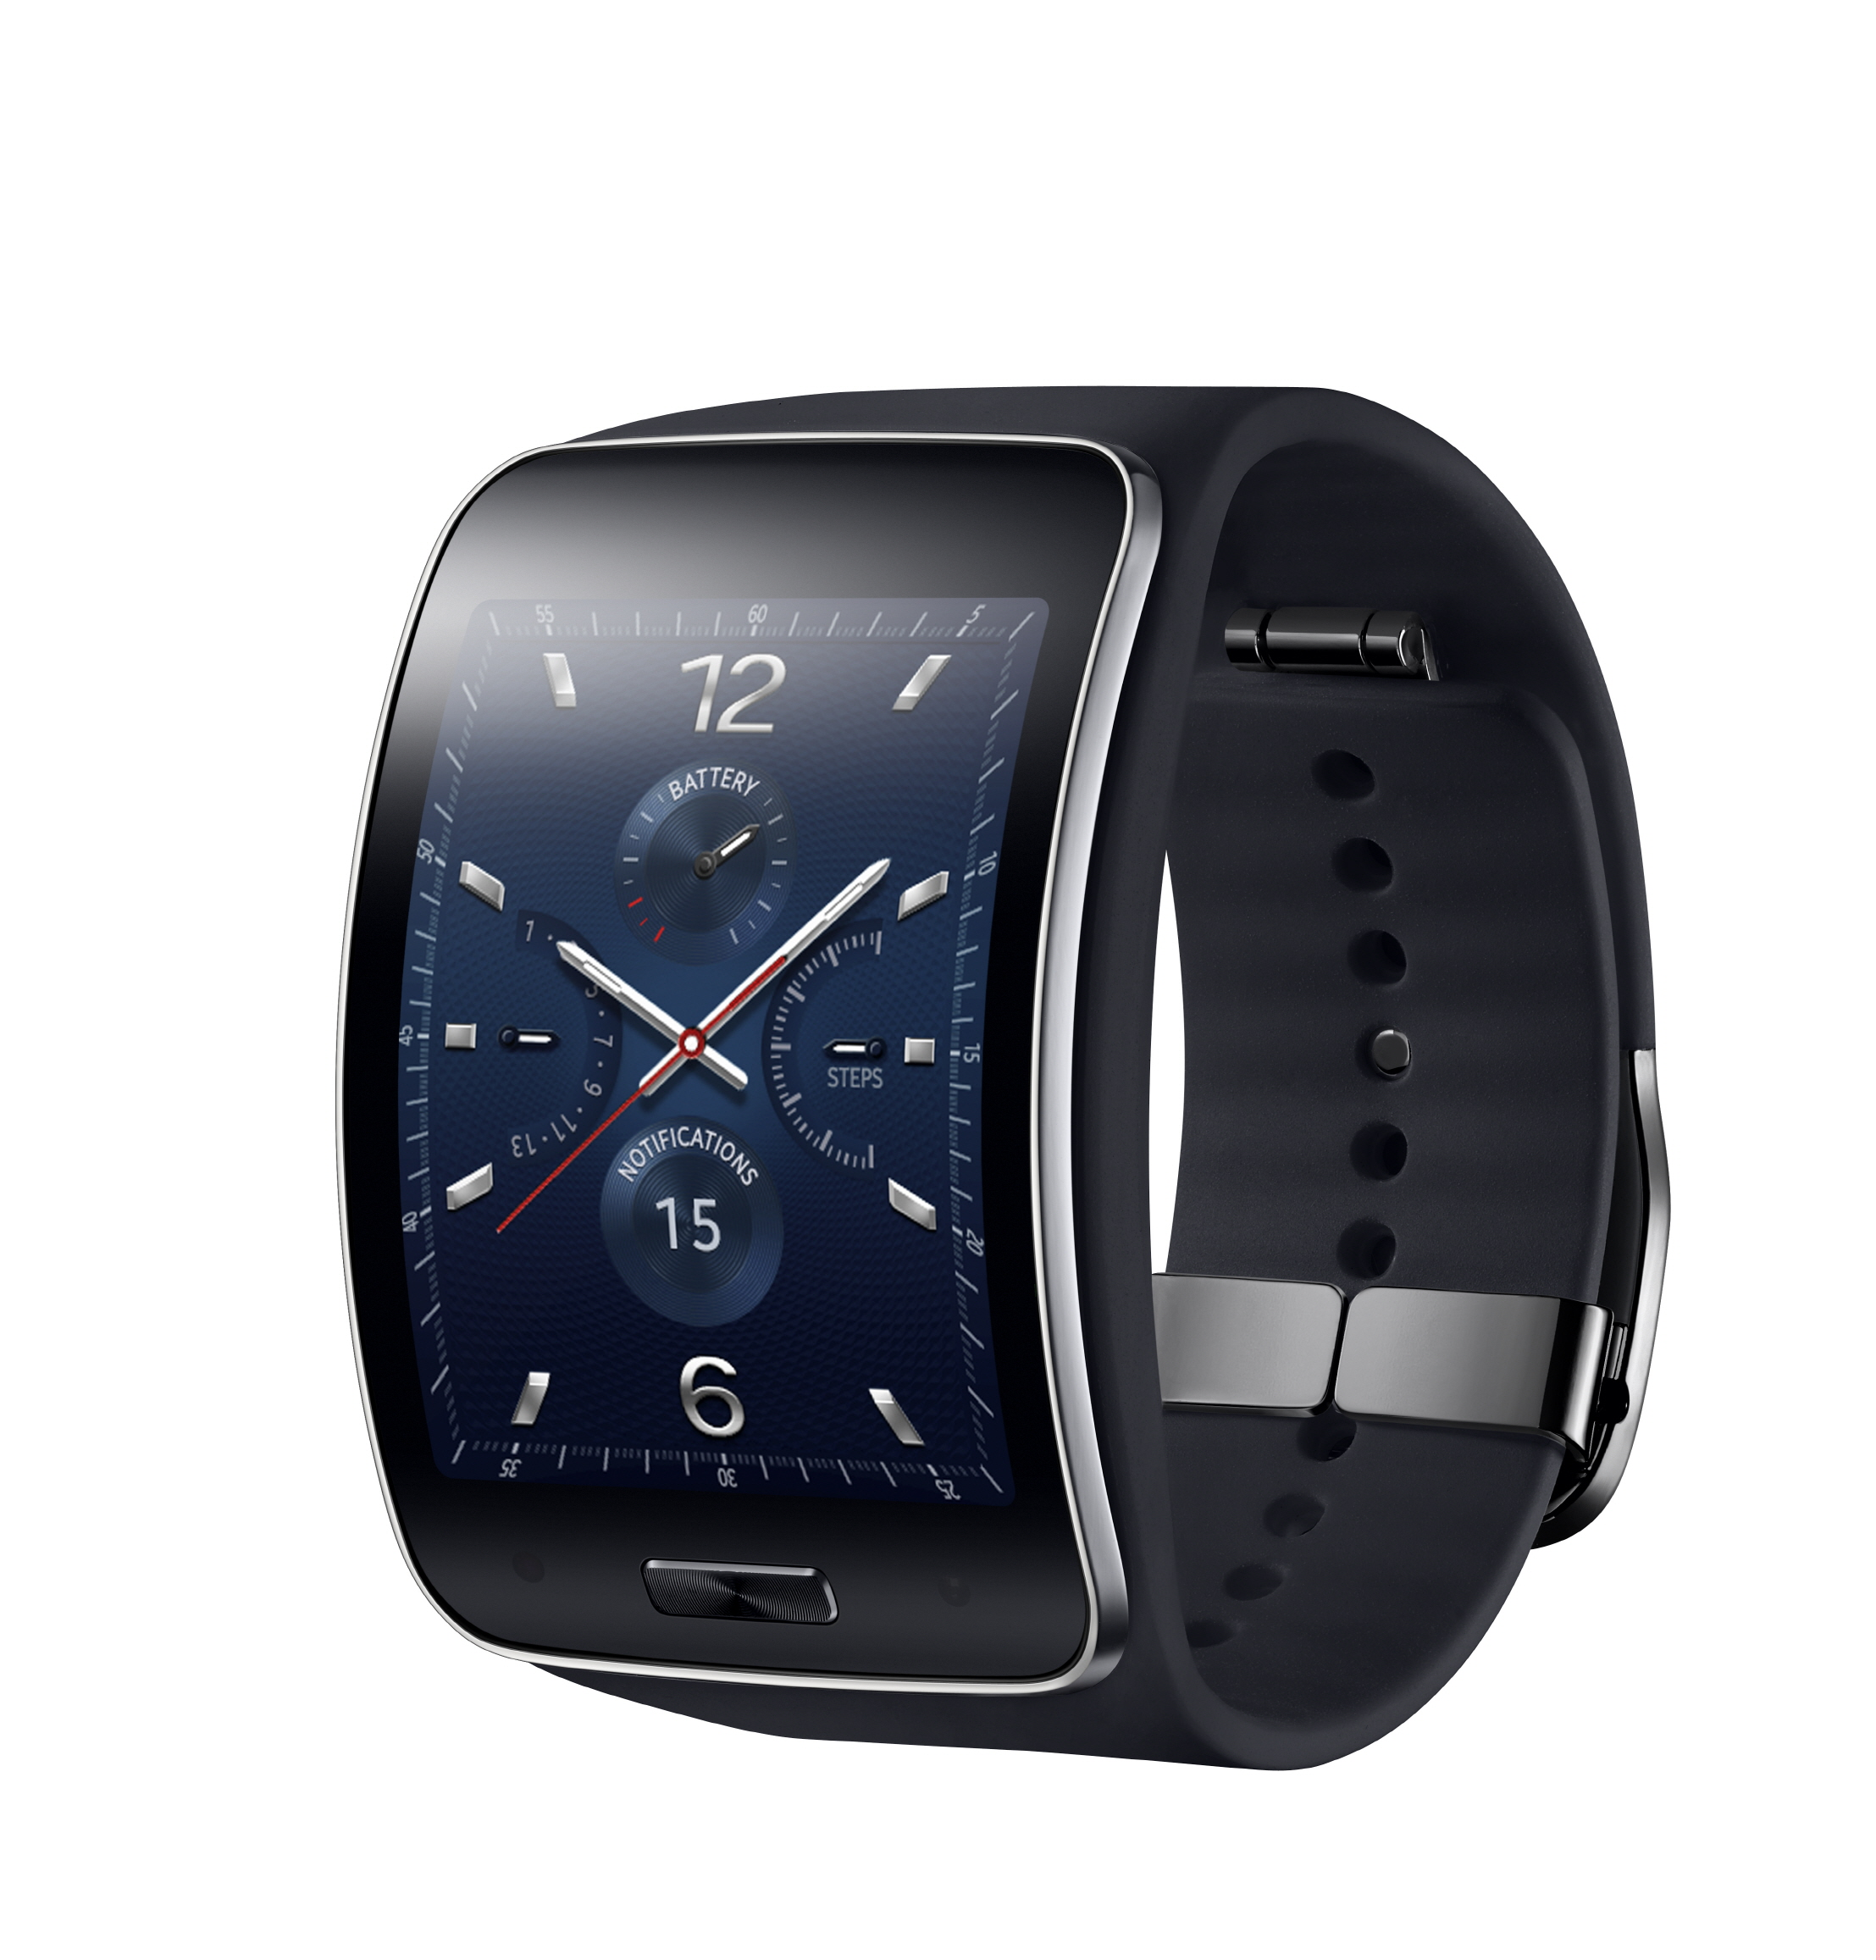 samsungs know smartwatches samsung gear watches beautiful smart you samsungwatchta look like normal s